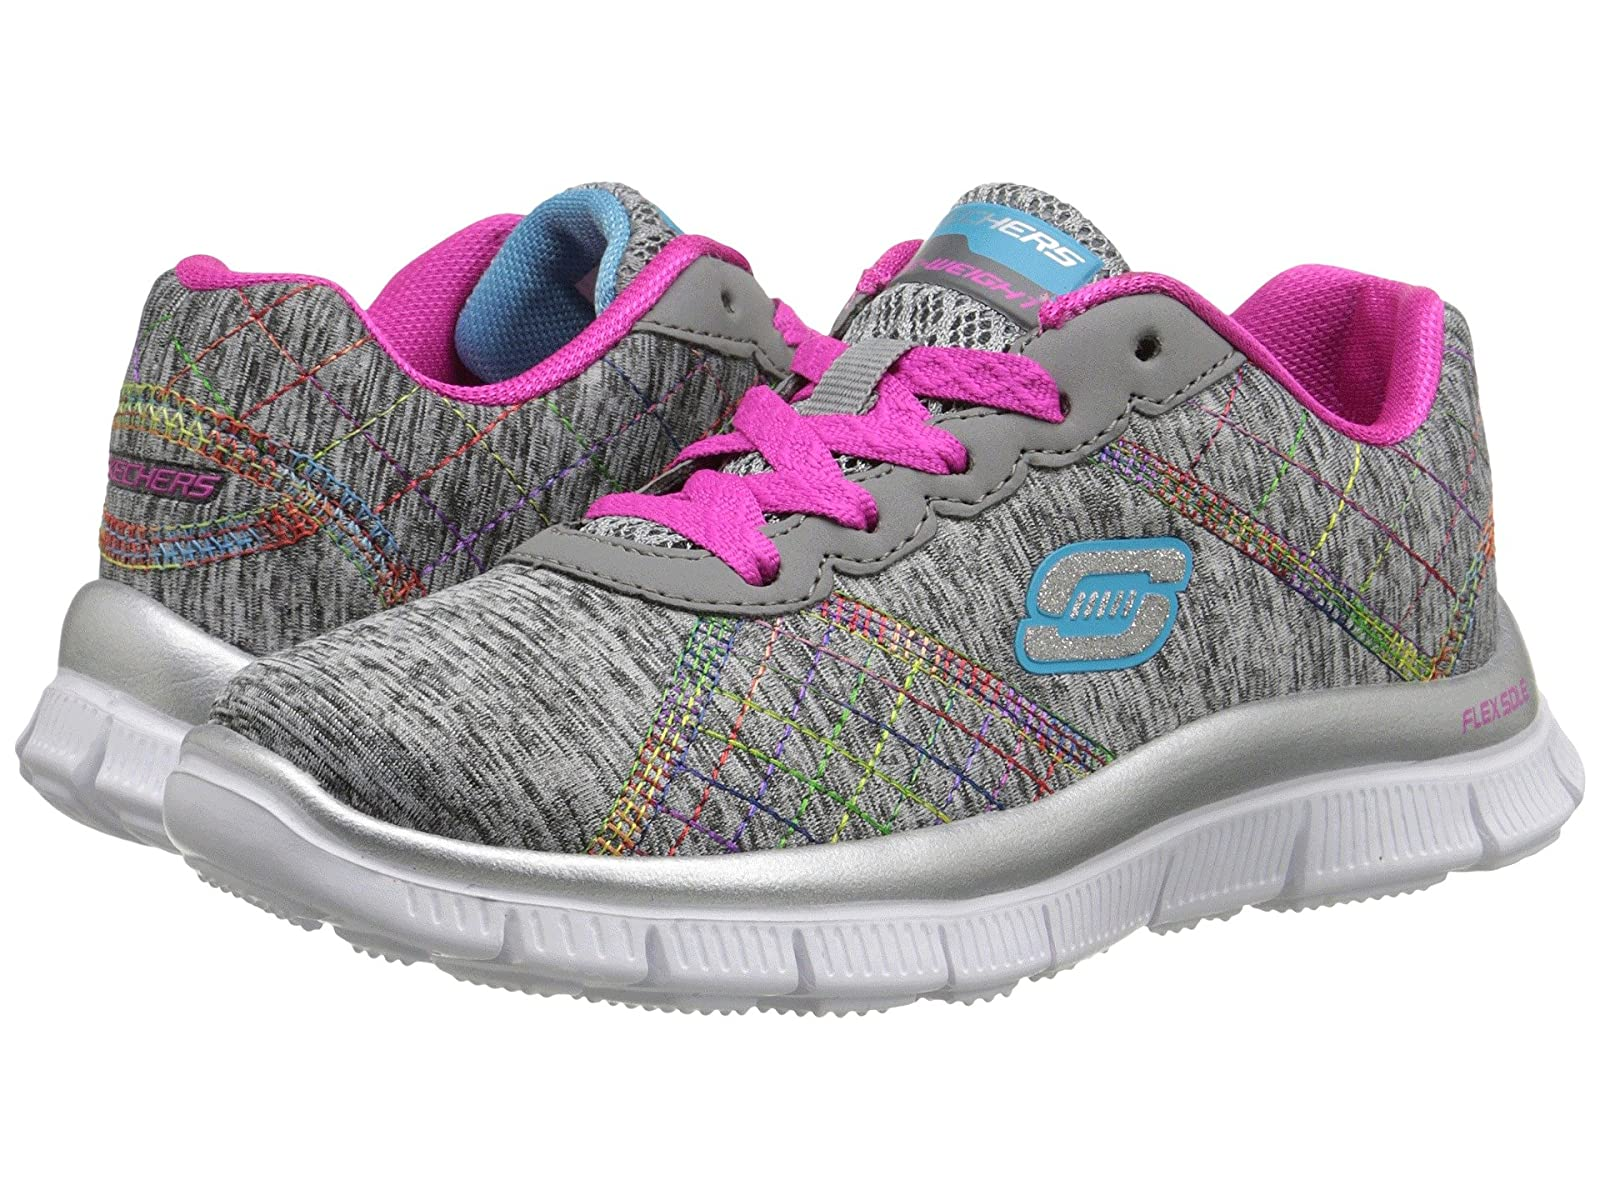 SKECHERS KIDS It's Electric 81863L (Little Kid/Big Kid)Cheap and distinctive eye-catching shoes